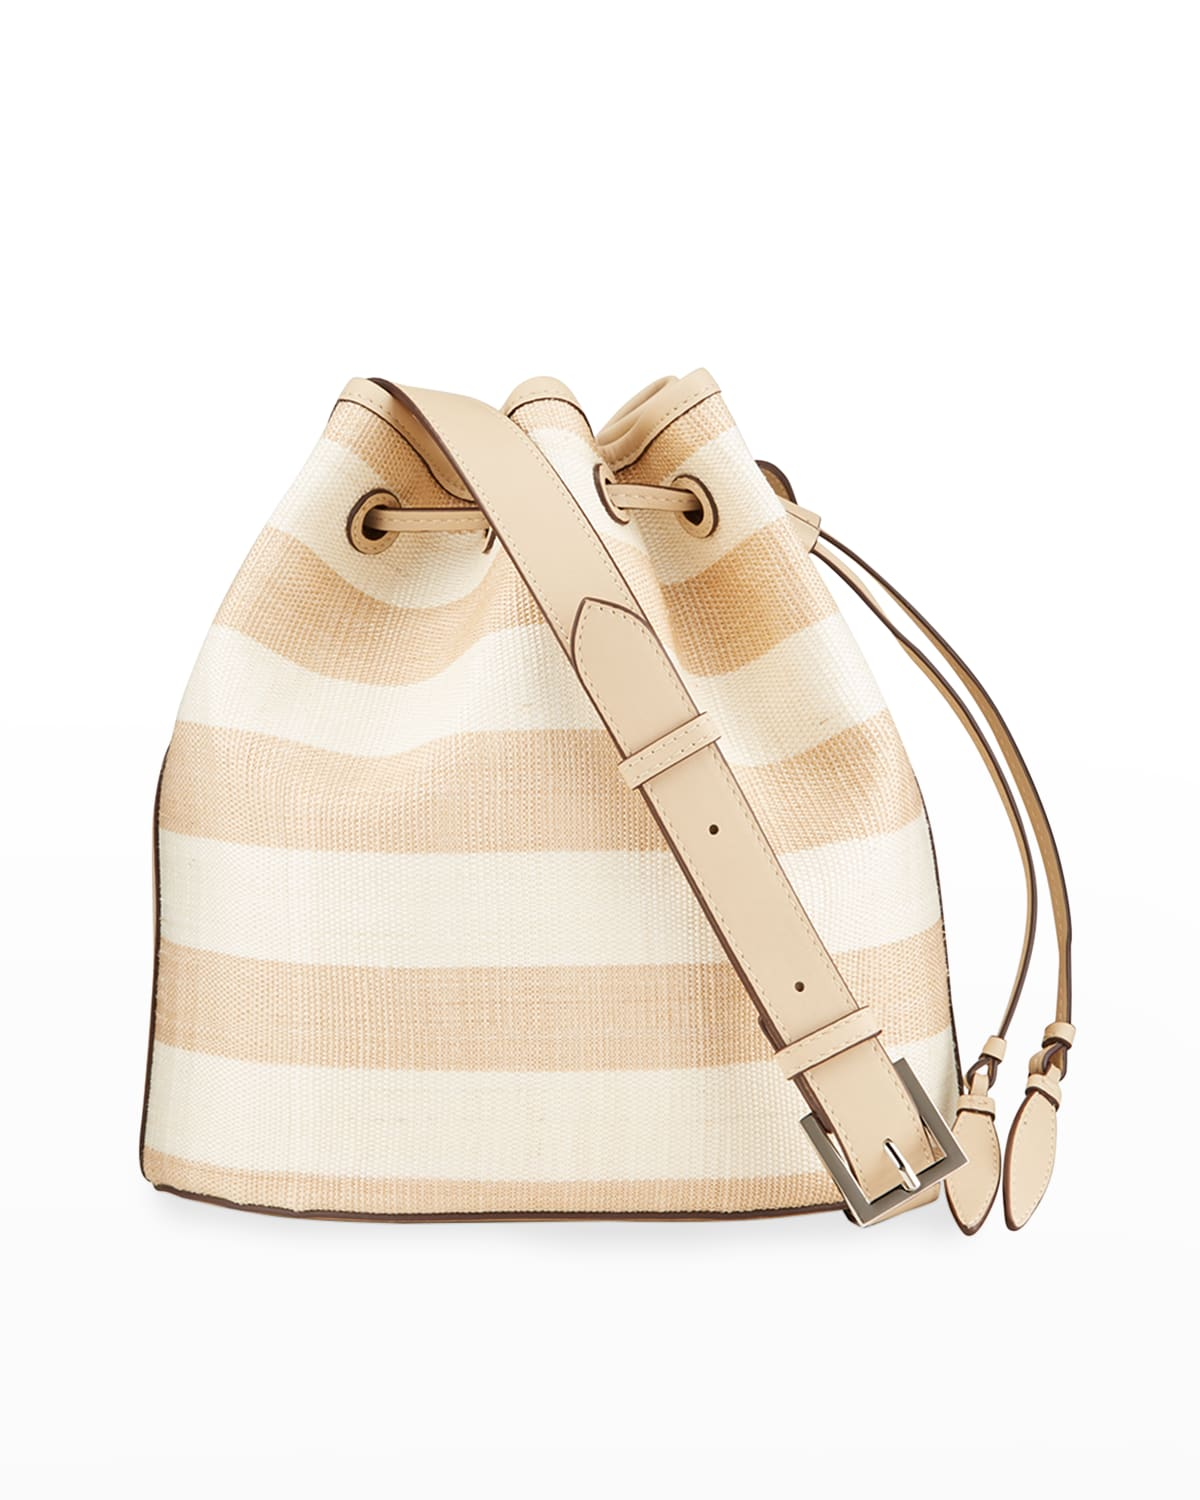 Striped Leather Large Bucket Bag